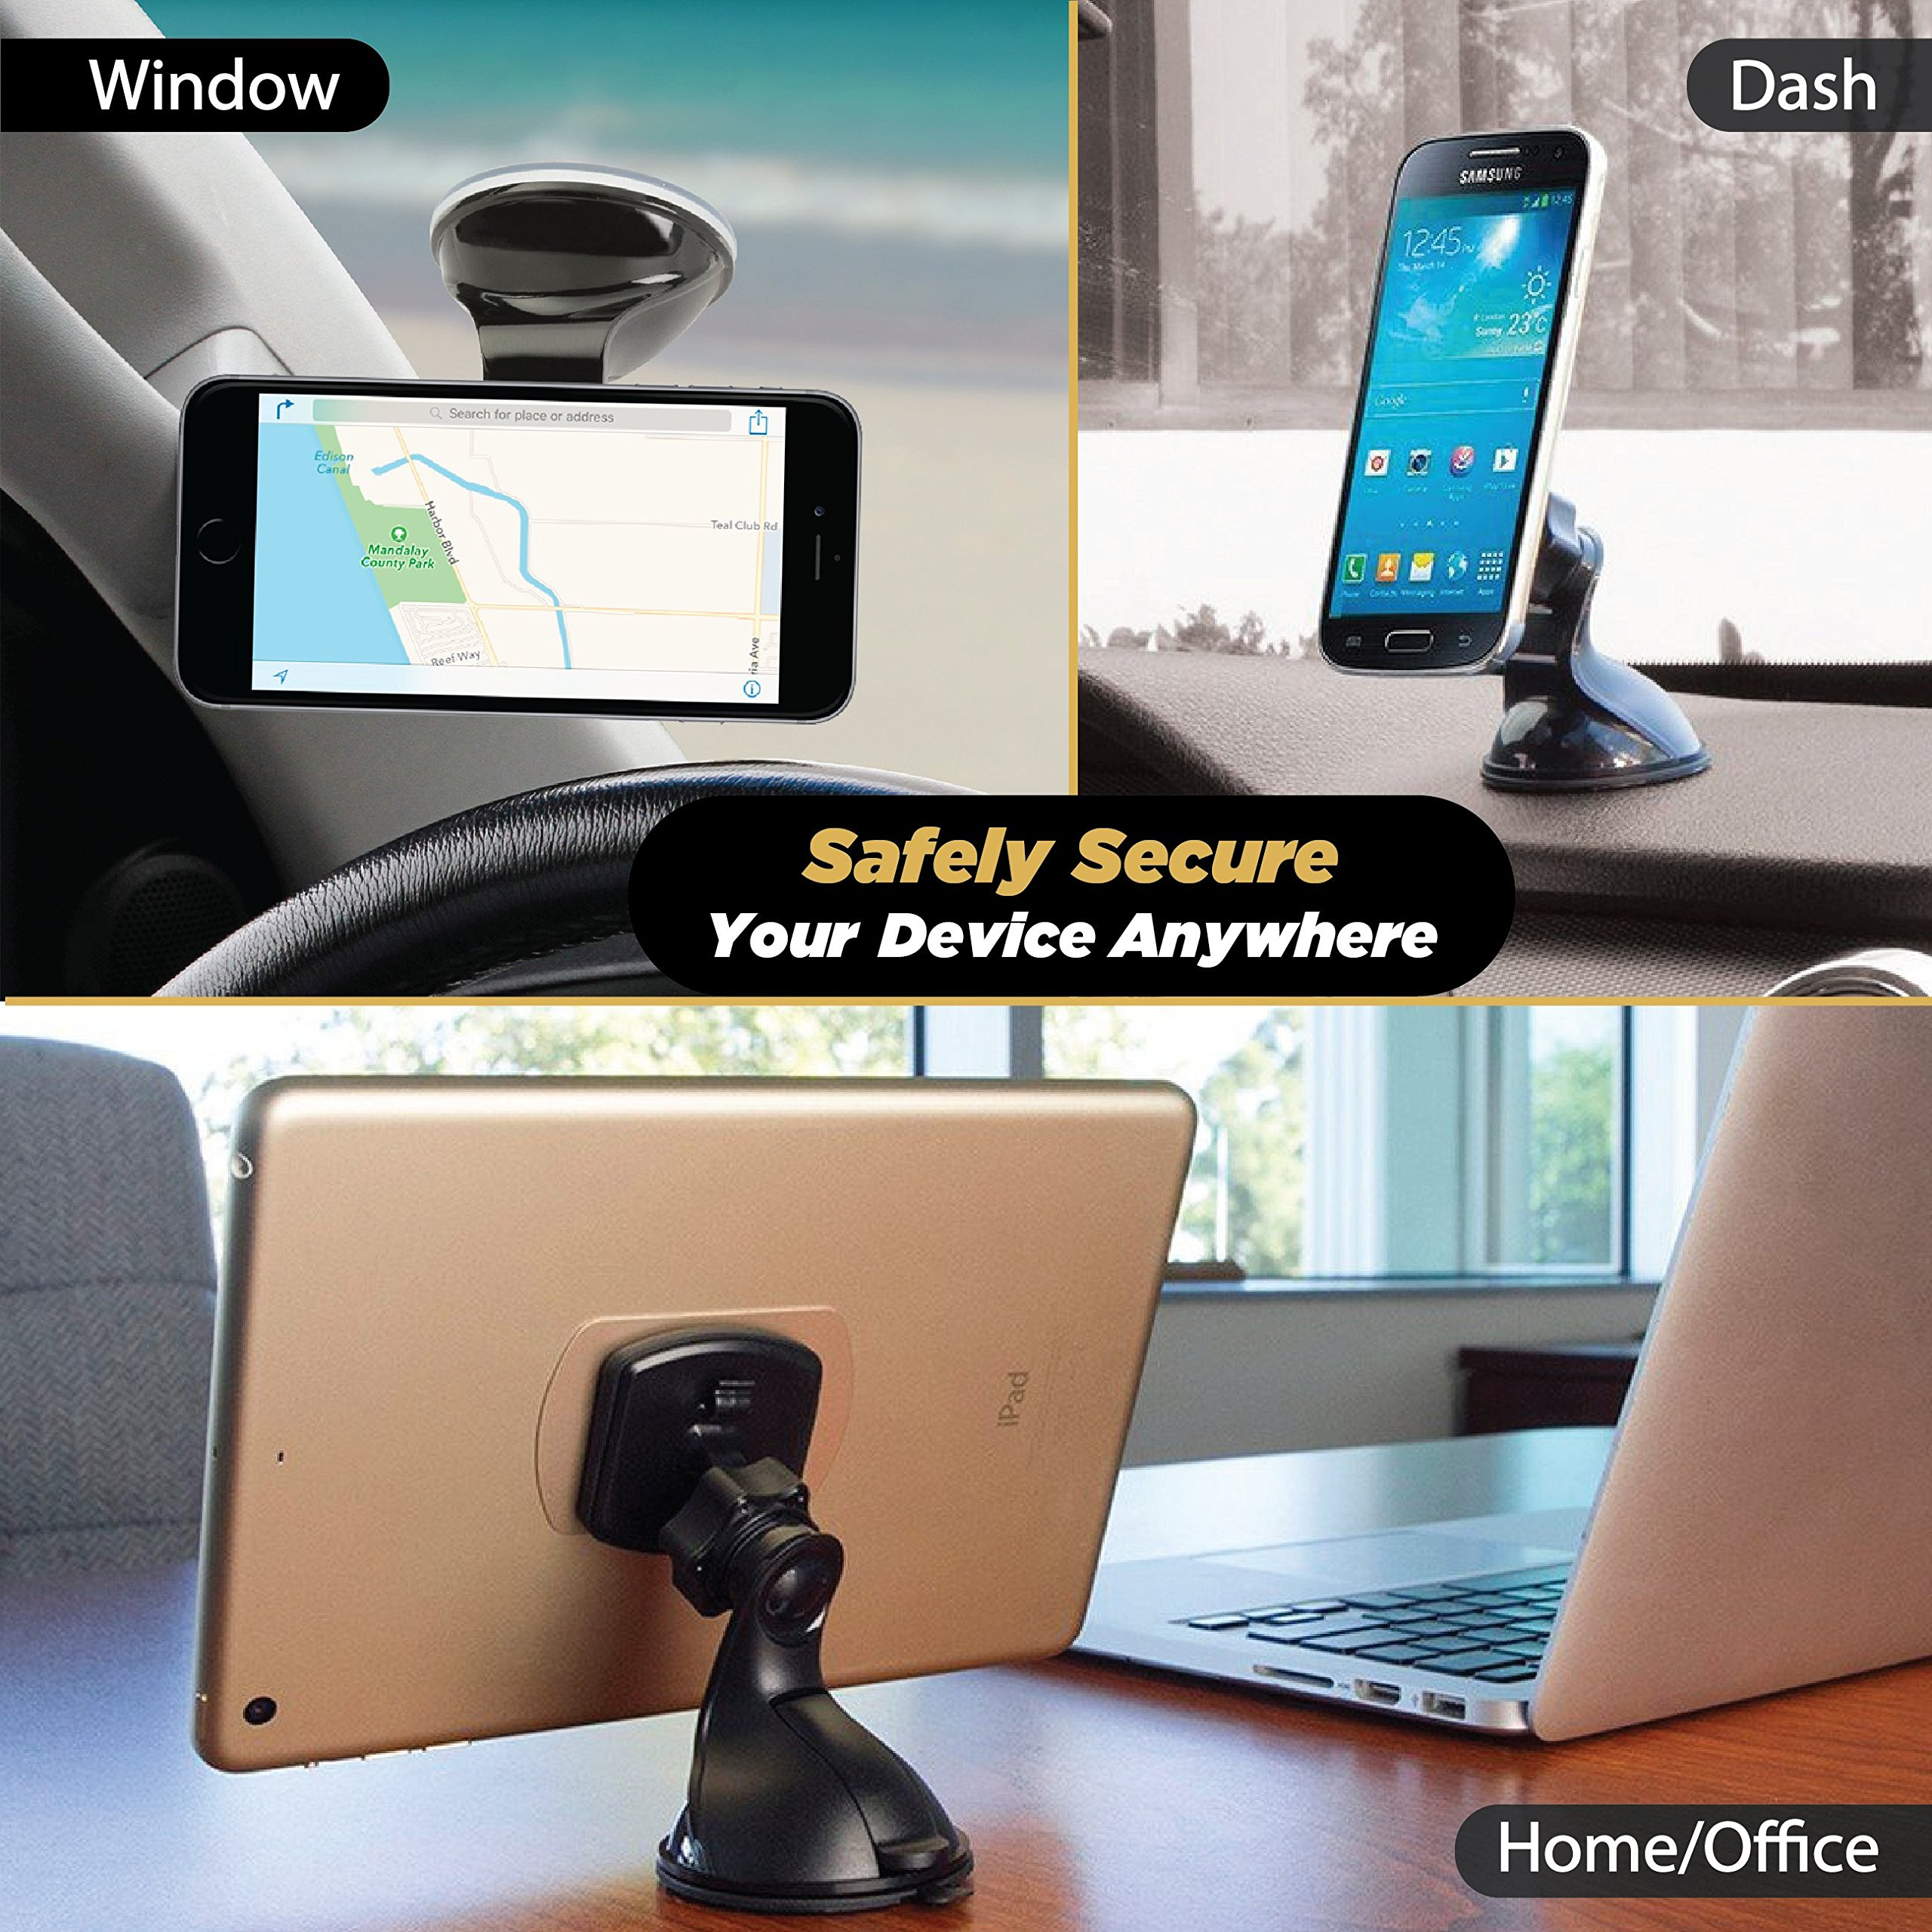 SCOSCHE MAGWSM2 MagicMount Universal Magnetic Phone/GPS Suction Cup Mount for the Car, Home or Office by Scosche (Image #4)